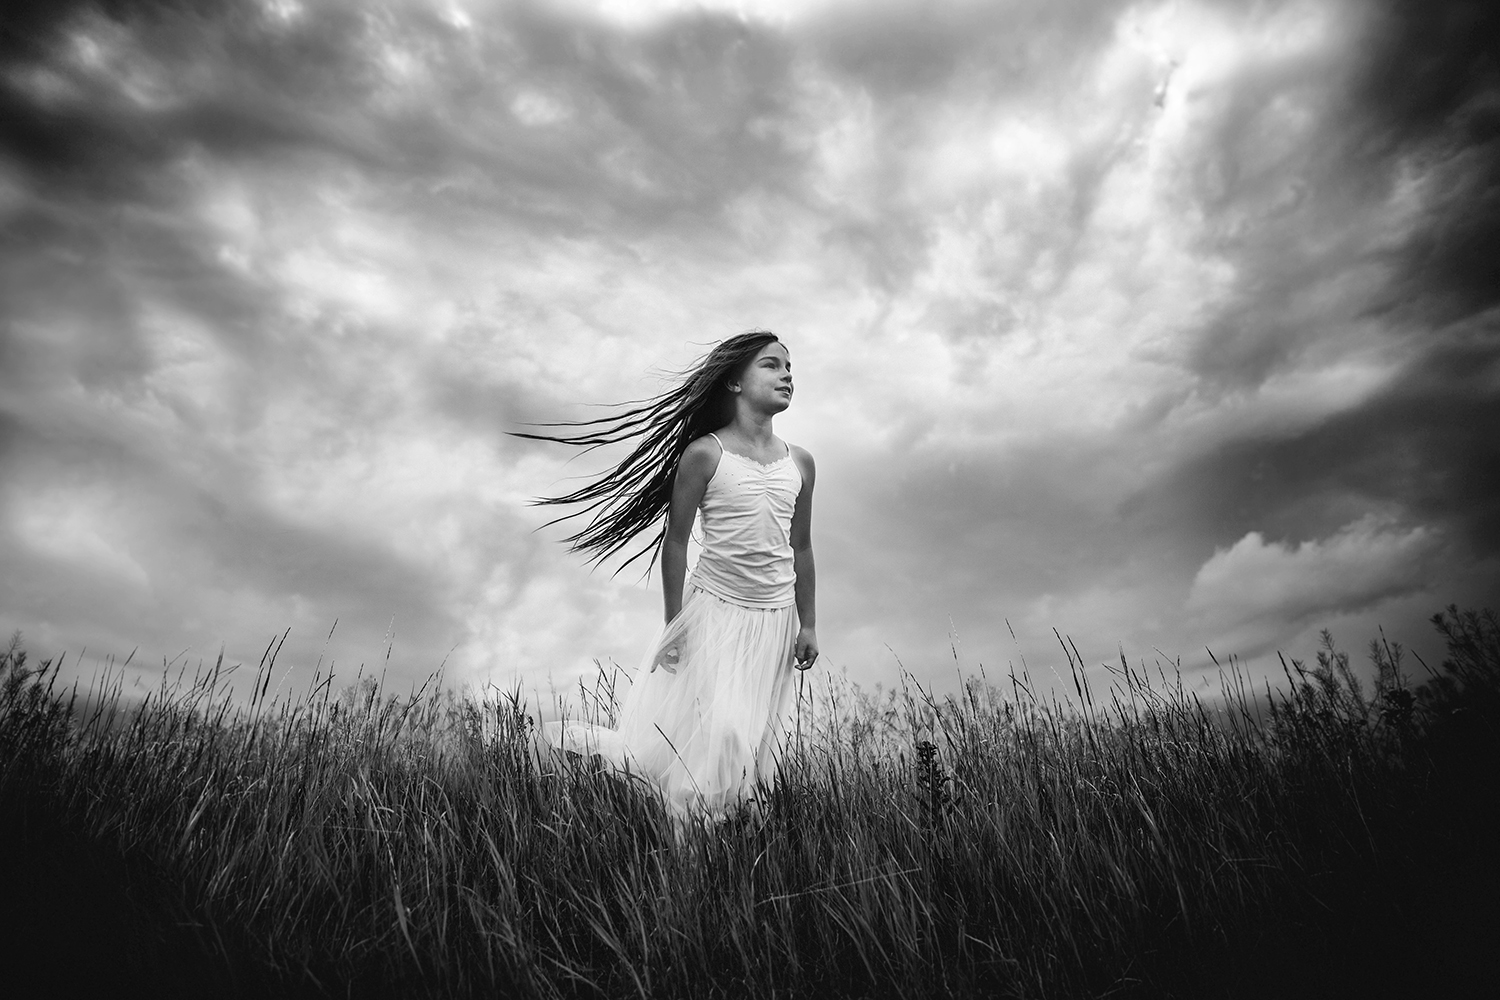 Lifestyle portrait of a girl against a stormy sky